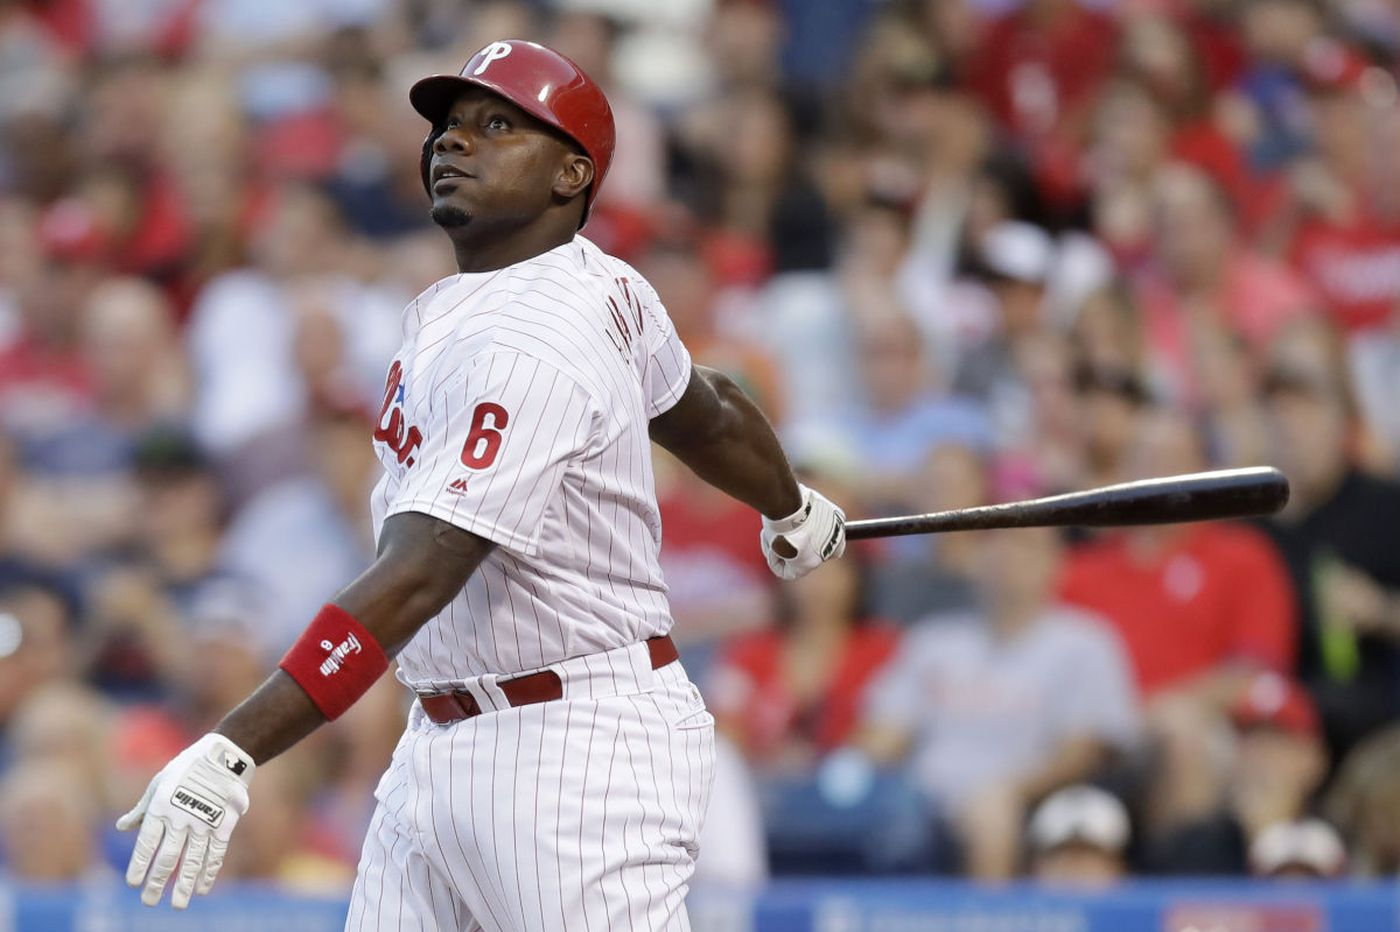 Rendell: We sure had a blast with Ryan Howard